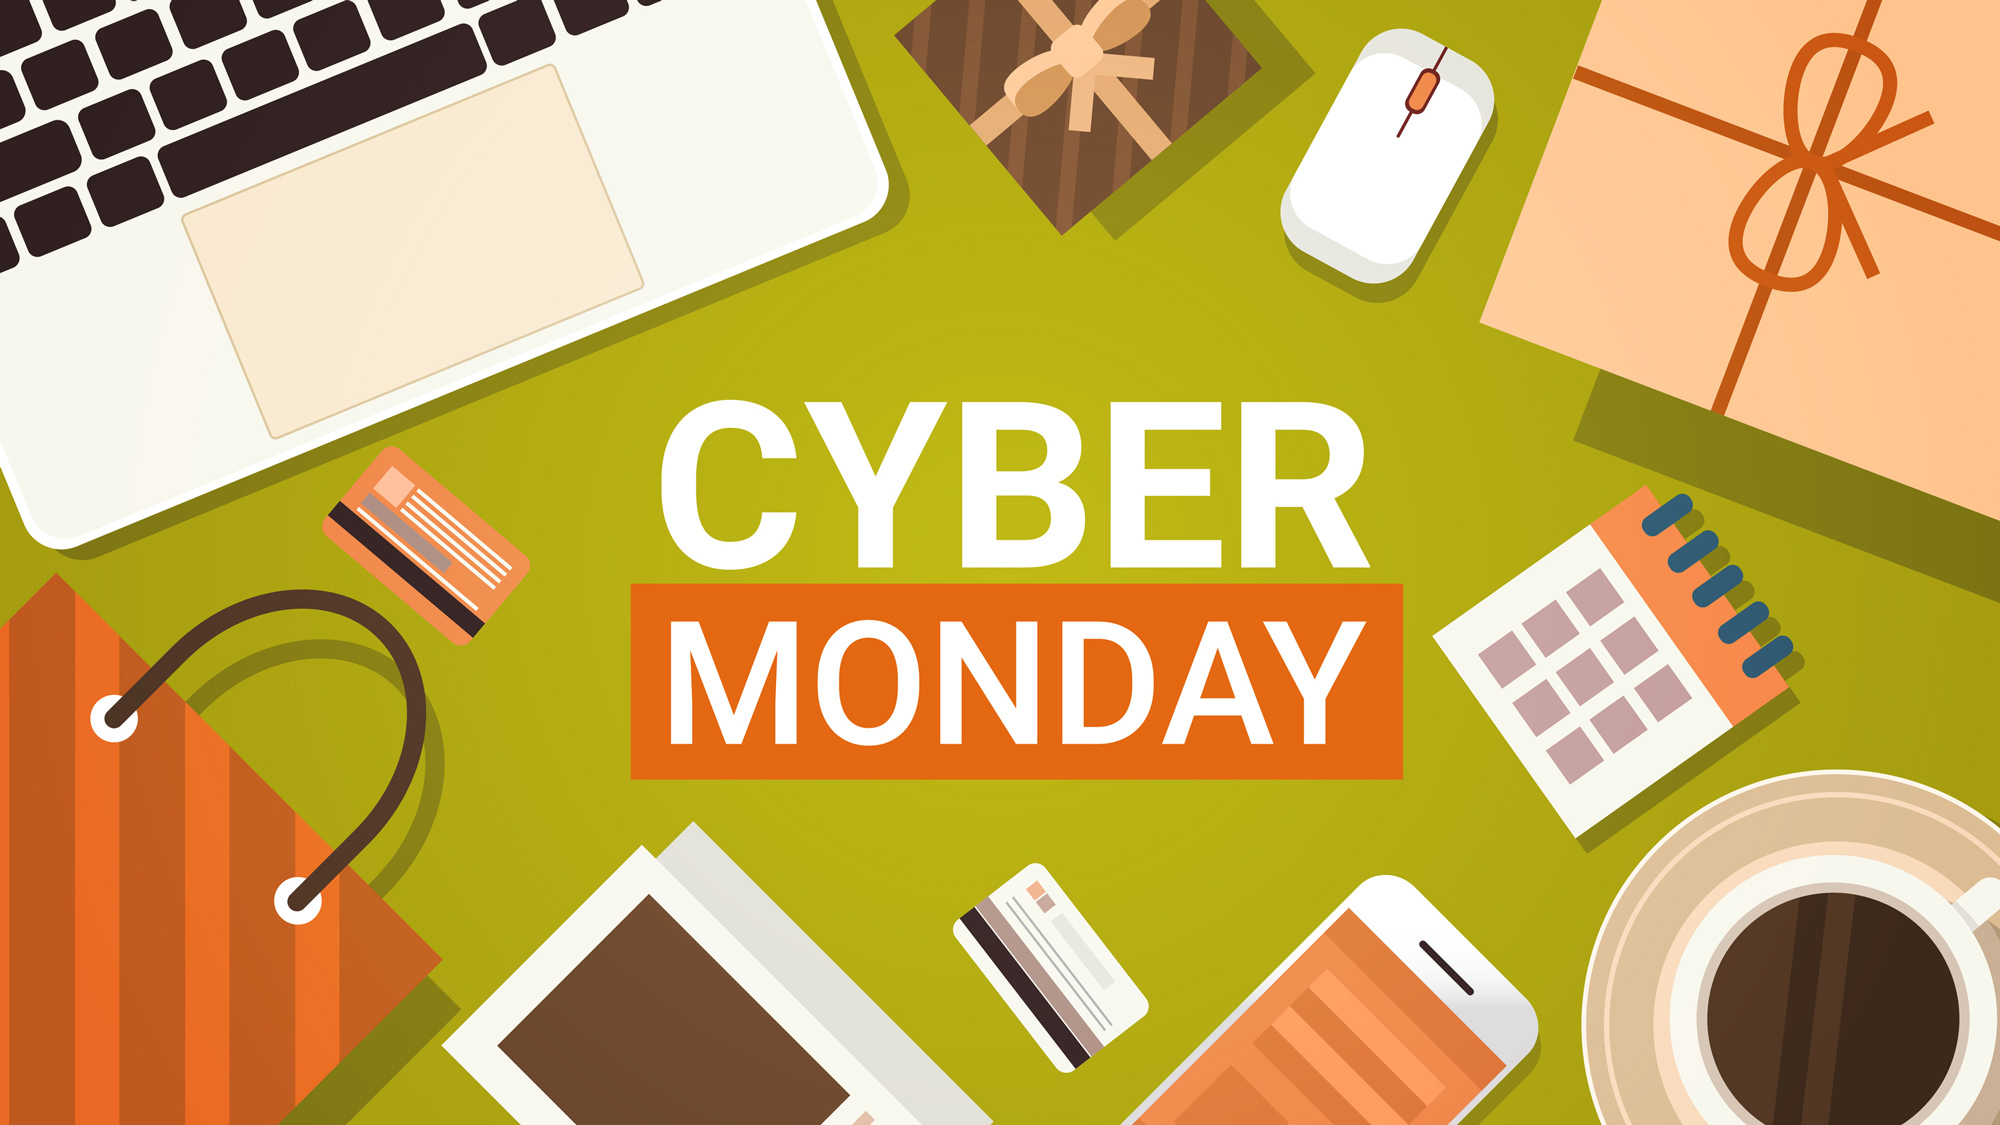 Cyber Monday 2017 Find Out The Best Cyber Monday Deals In